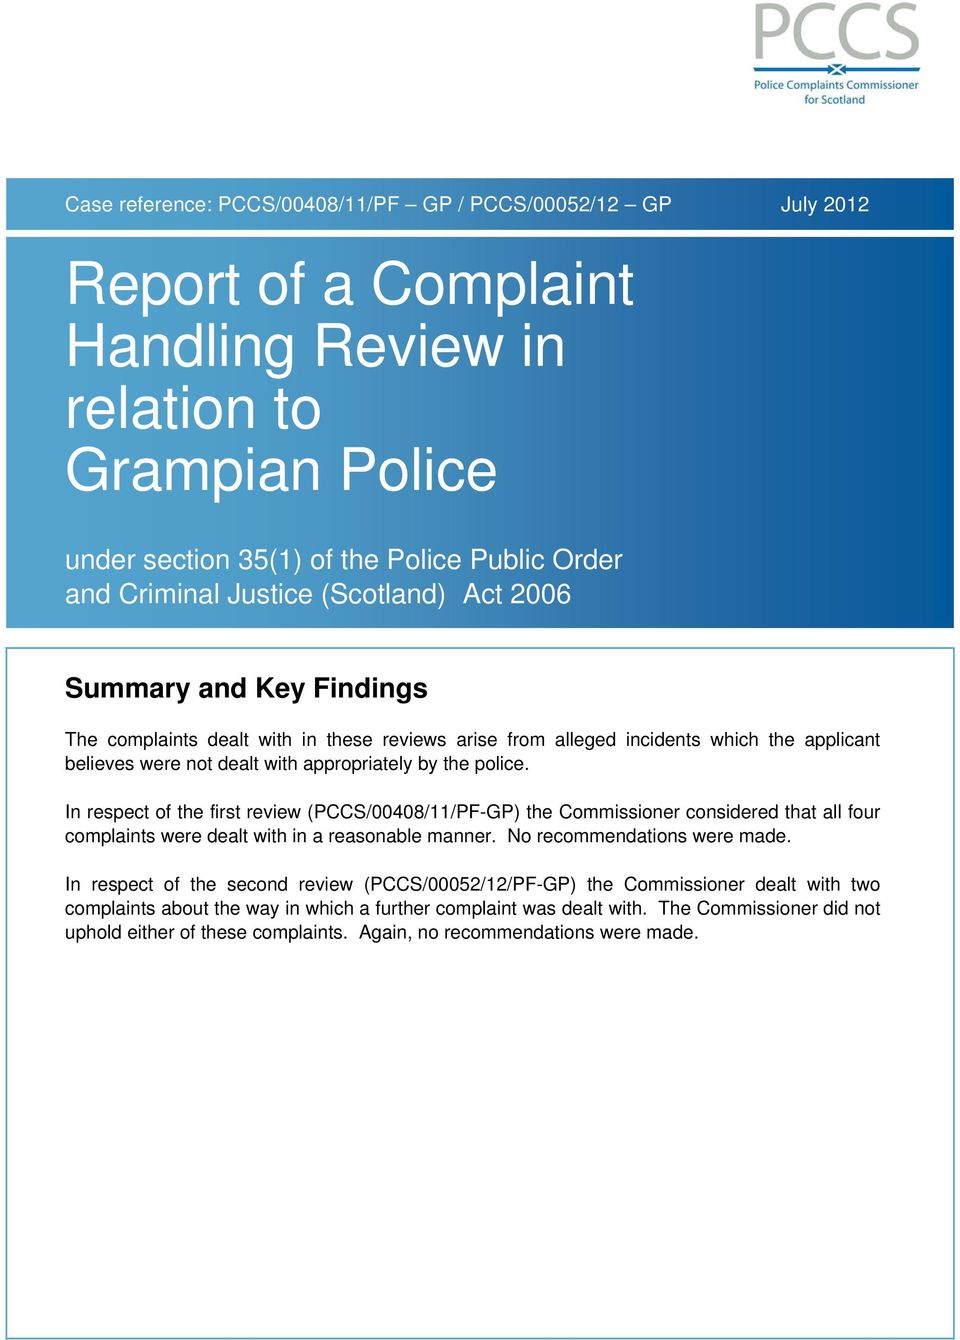 police. In respect of the first review (PCCS/00408/11/PF-GP) the Commissioner considered that all four complaints were dealt with in a reasonable manner. No recommendations were made.